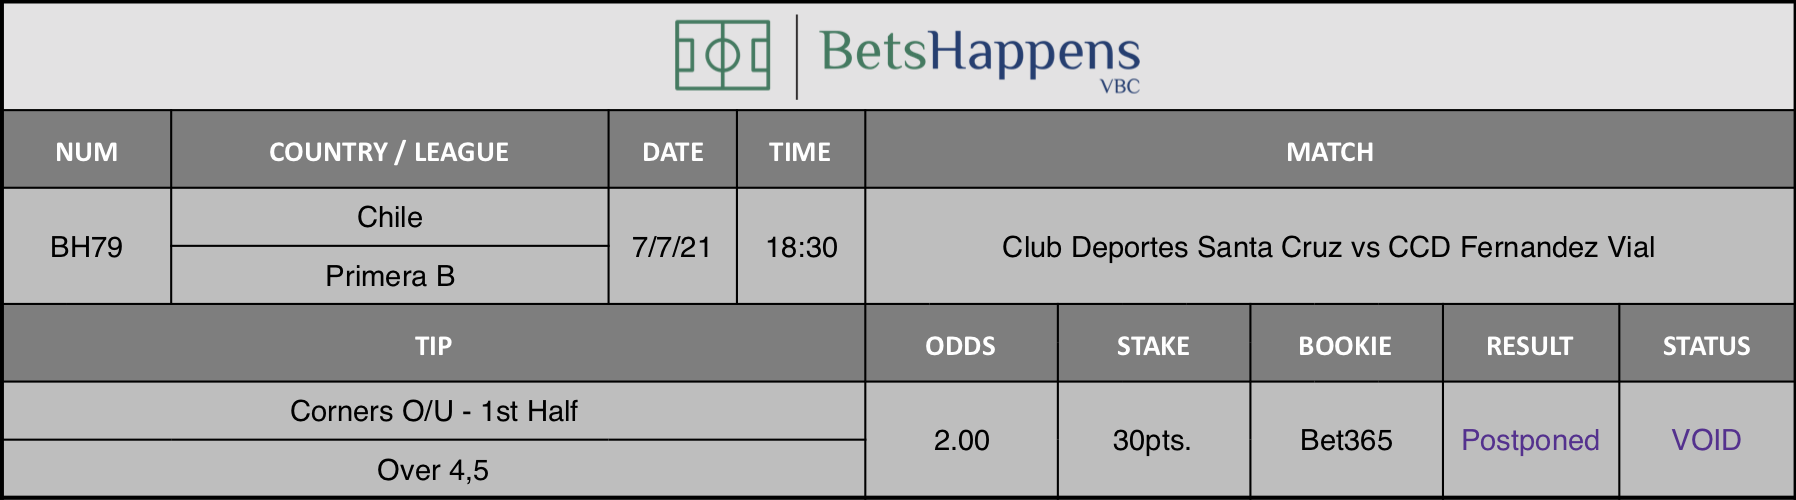 Results of our advice for the Club Deportes Santa Cruz vs CCD Fernandez Vial match in which Corners O / U 1st Half Over 4.5 is recommended.